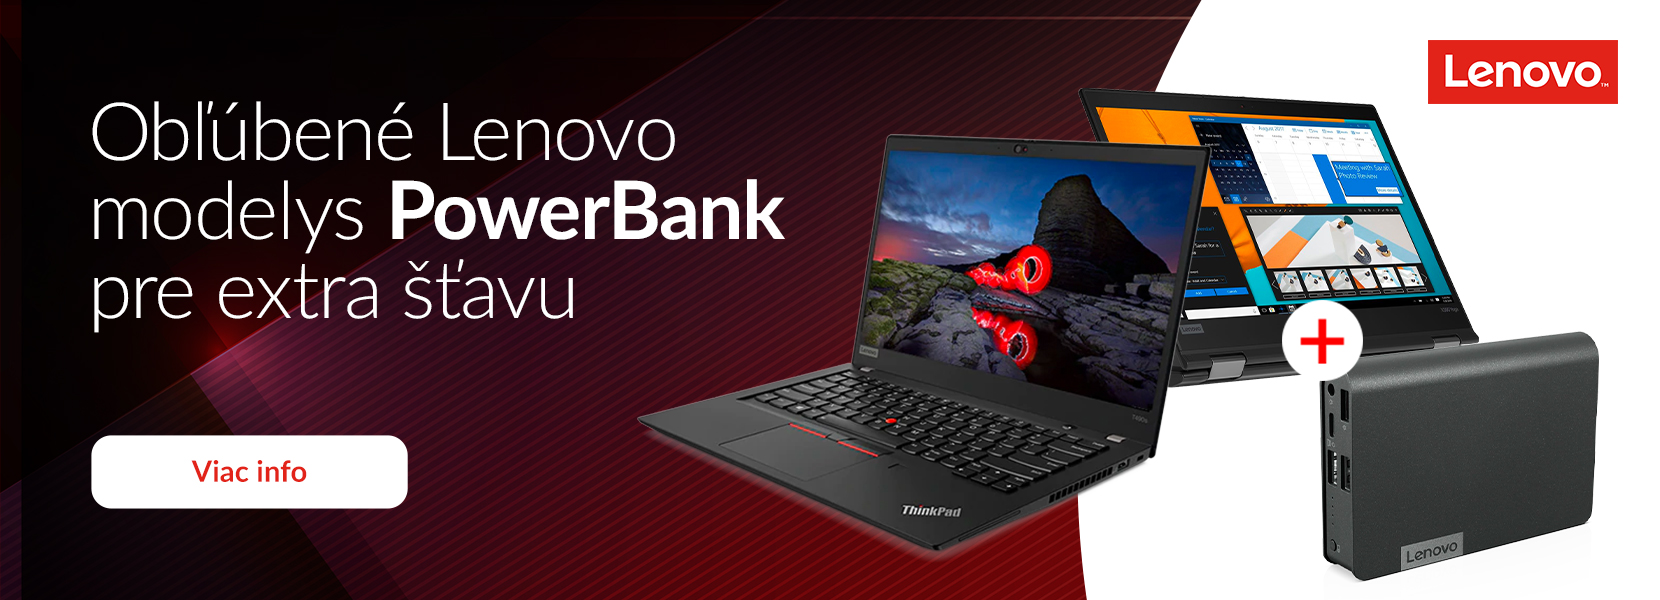 Lenovo + powerbank